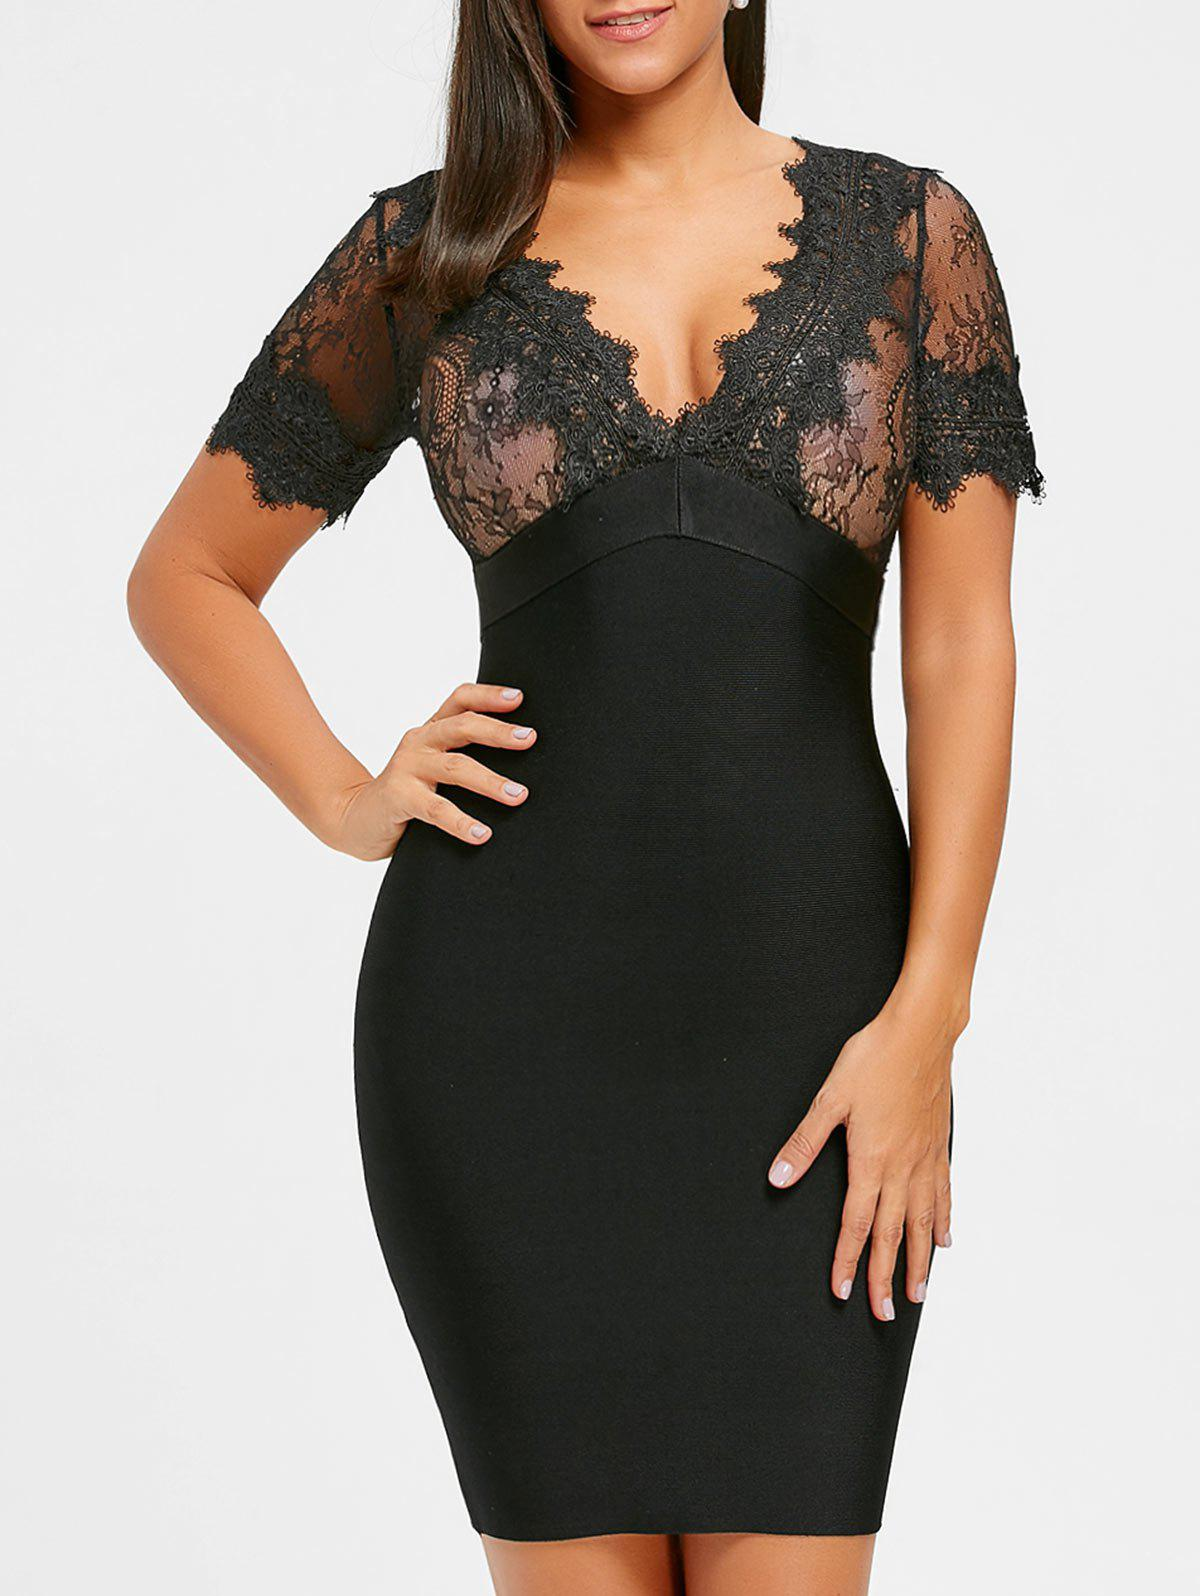 Shops Plunging Neck Lace Insert Bandage Dress